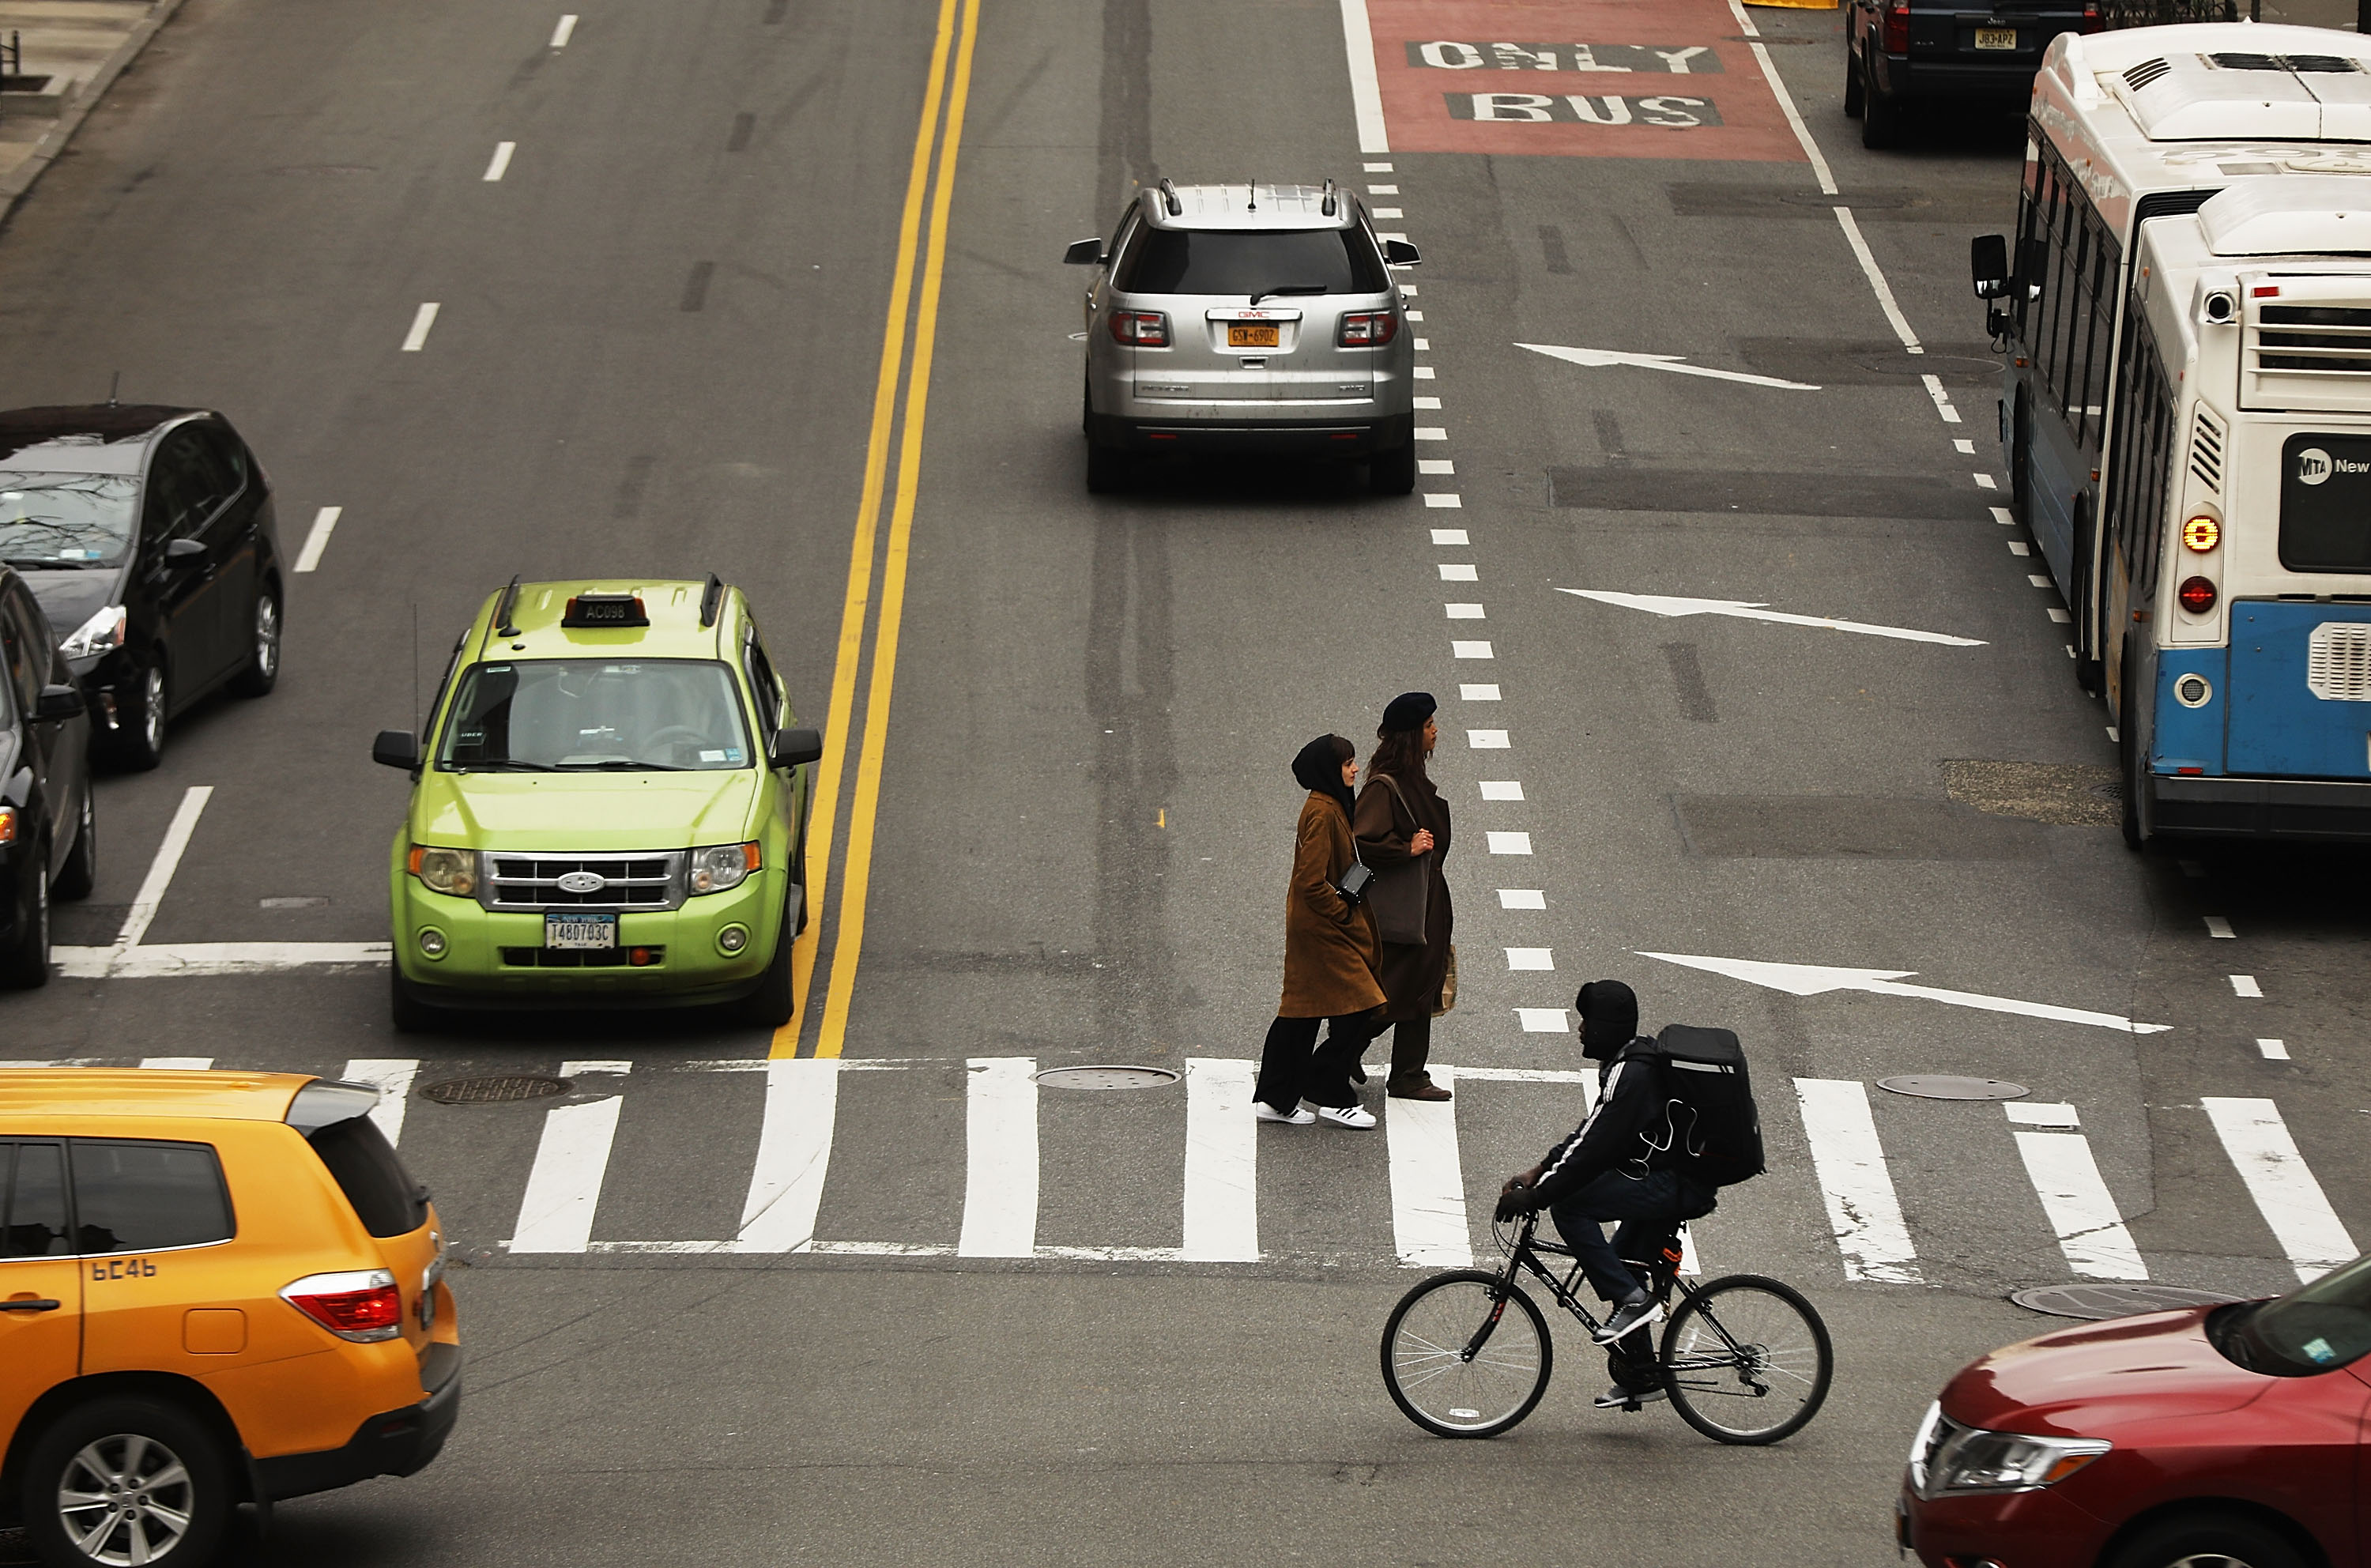 Pedestrian deaths keep rising in the U.S. Can Congress reverse the trend?